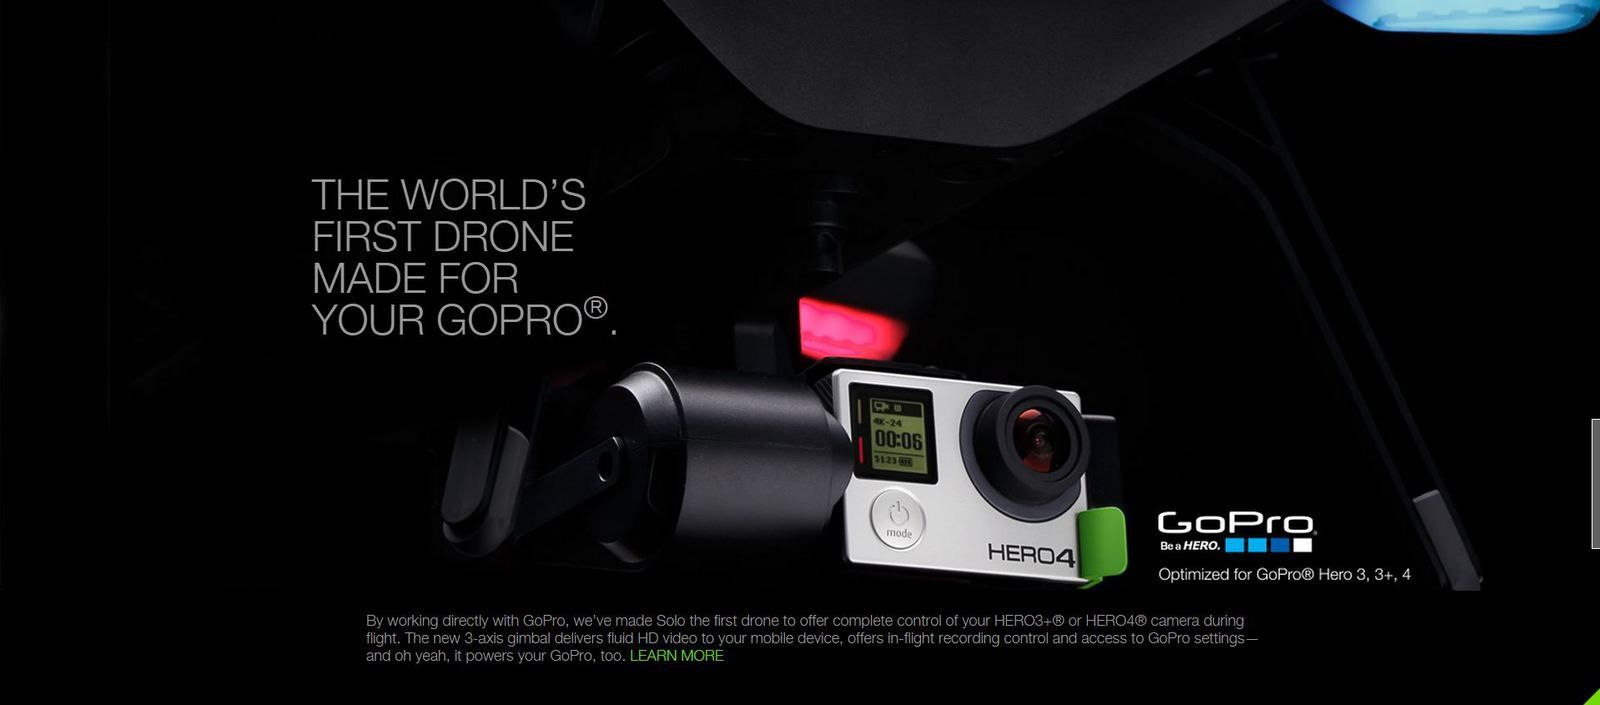 THE WORLD'S FIRST DRONE MADE FOR YOUR GOPRO®